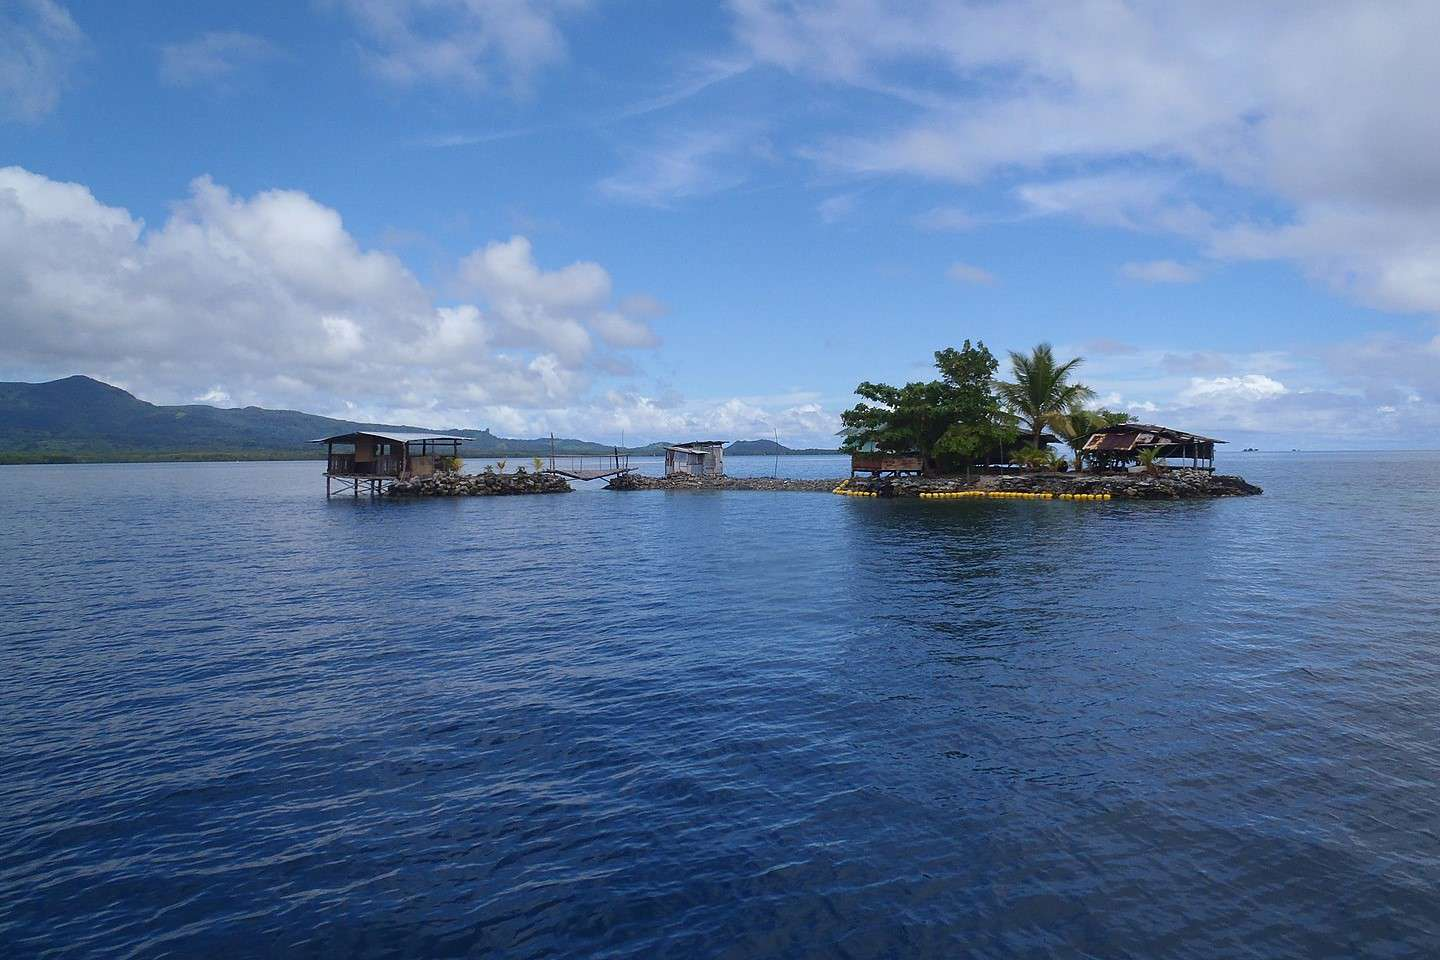 Micronesia in the Pacific Ocean